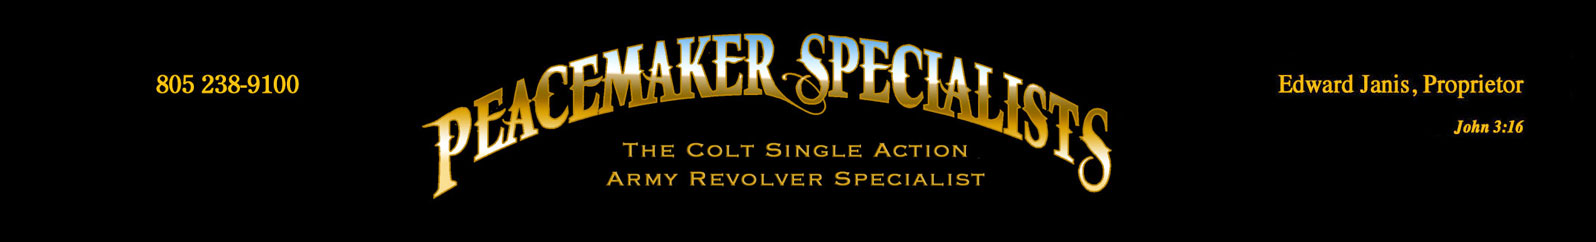 Colt Single Action Army Revolver Specialists